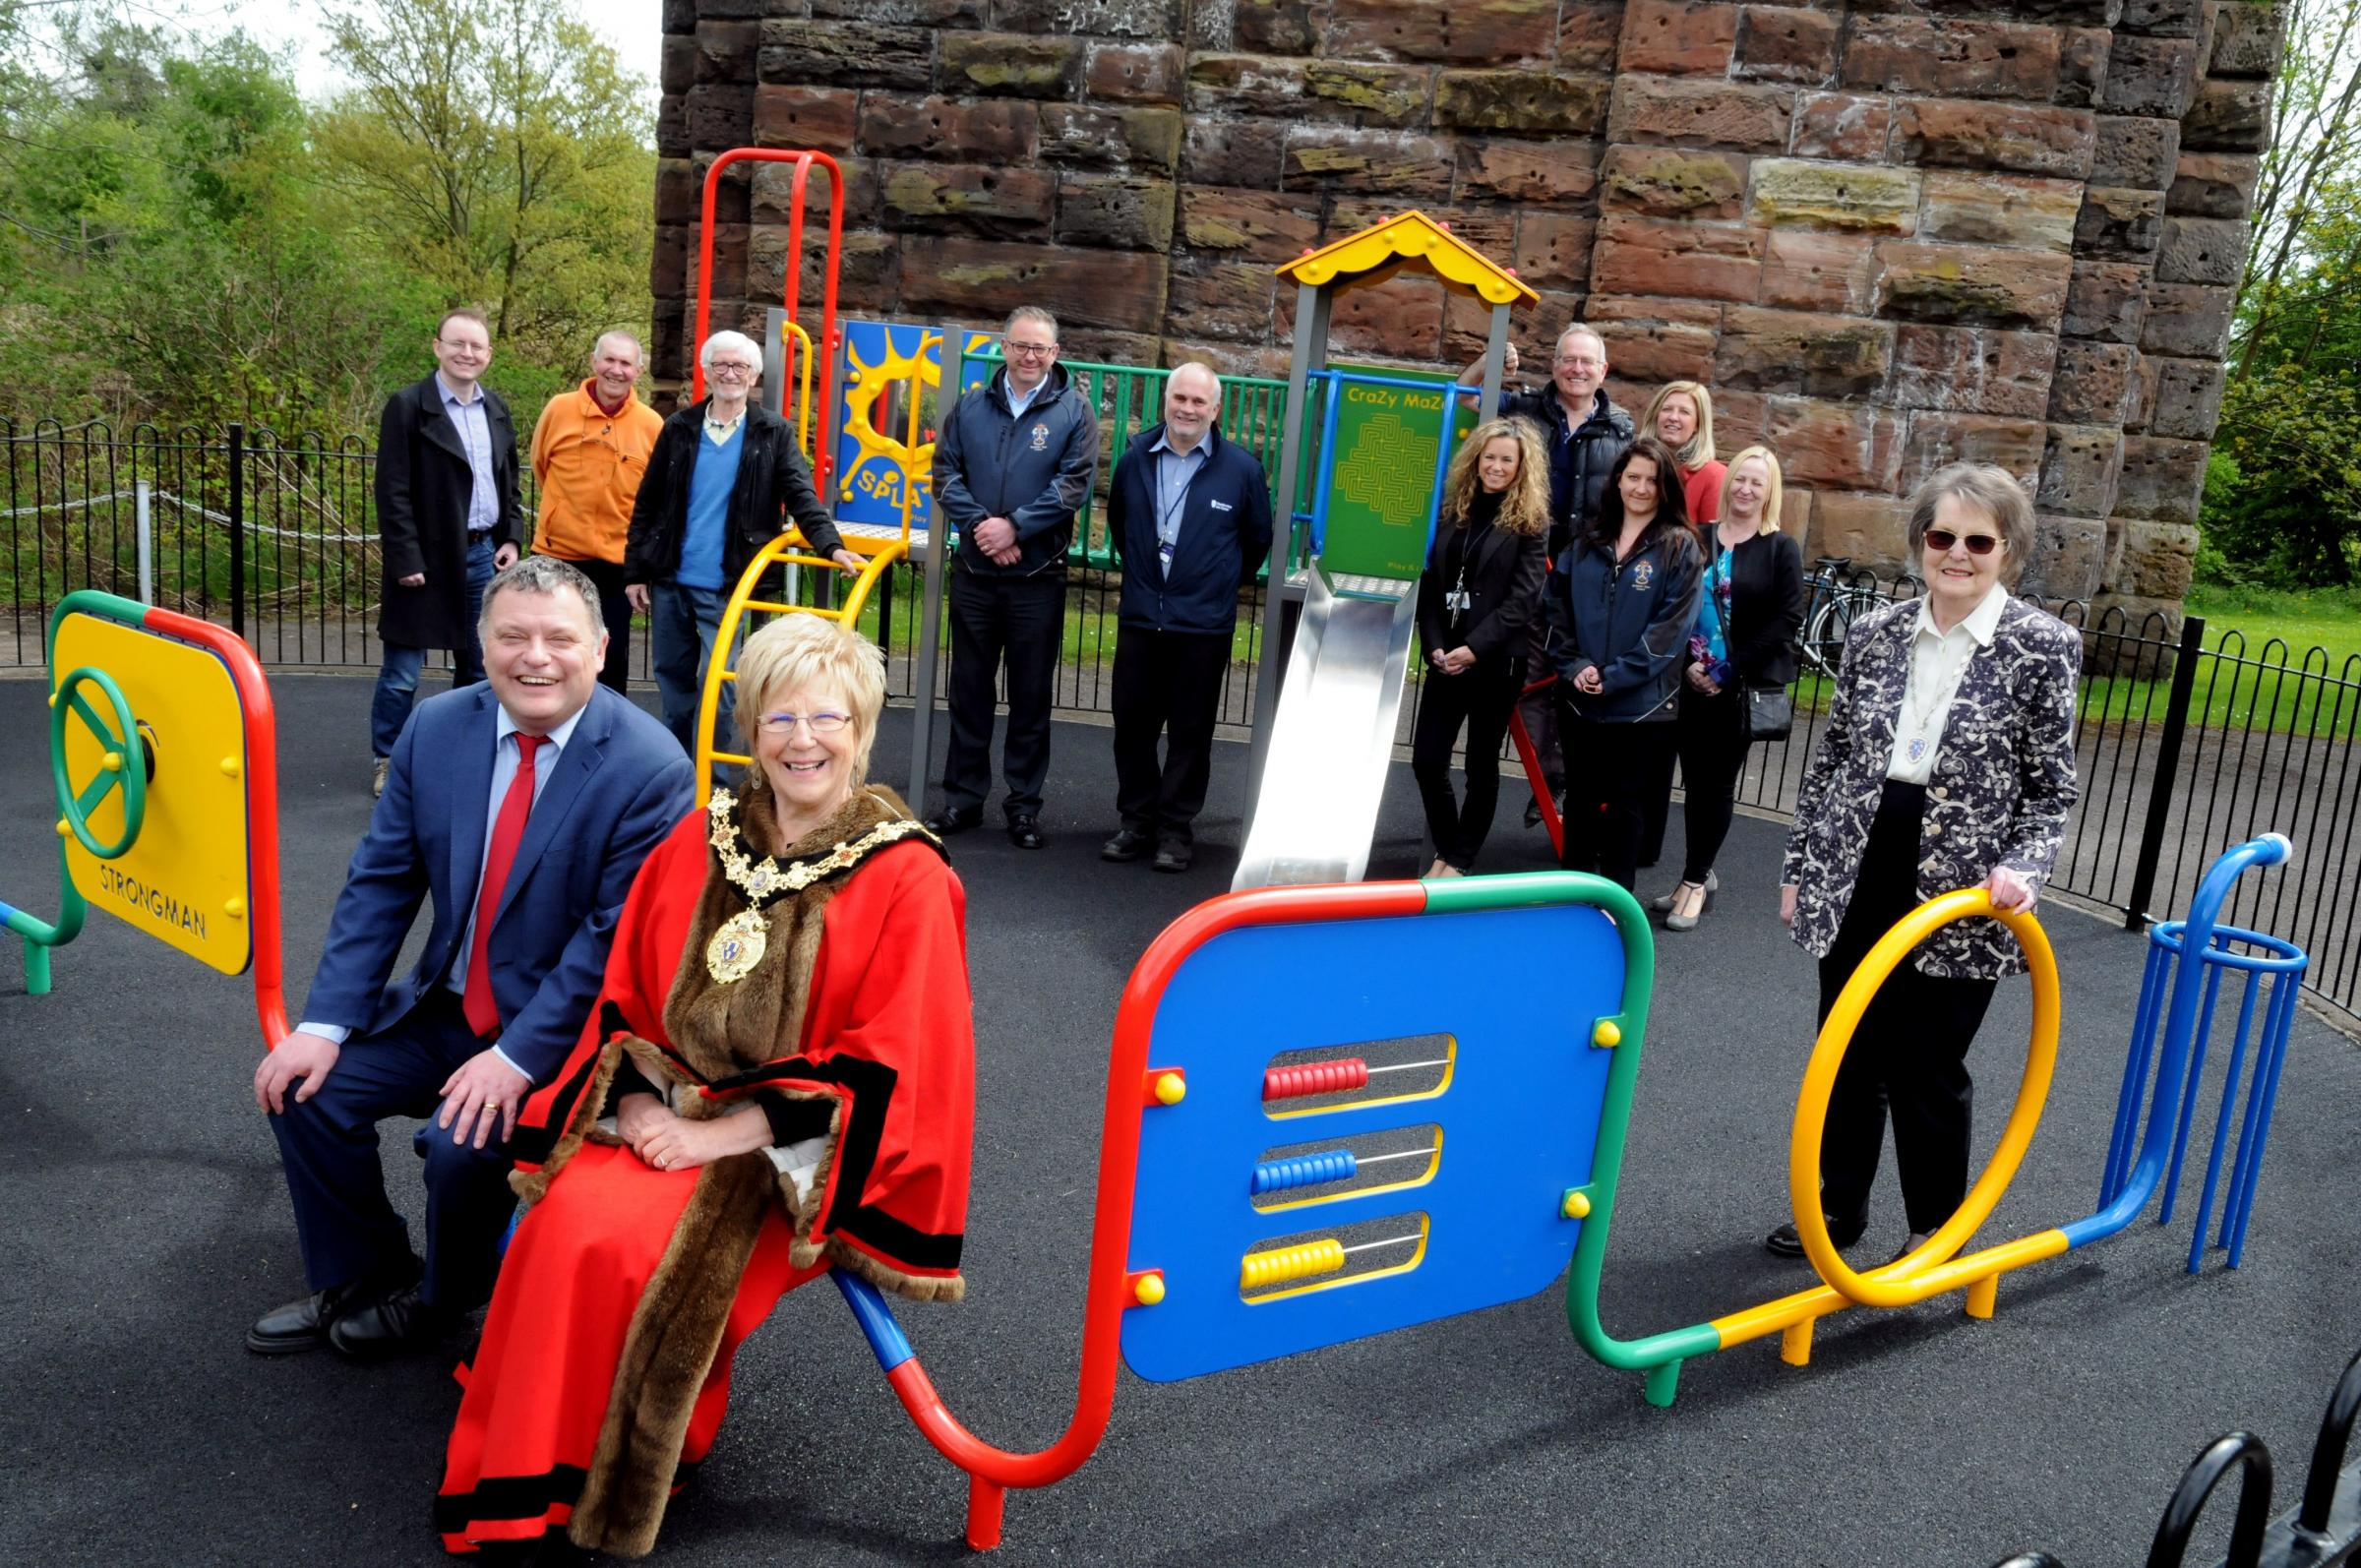 Town mayor Cllr Janet Myerscough-Illidge, MP Mike Amesbury, town council members and staff celebrate the reopening of Yarwood Close play area following extensive work